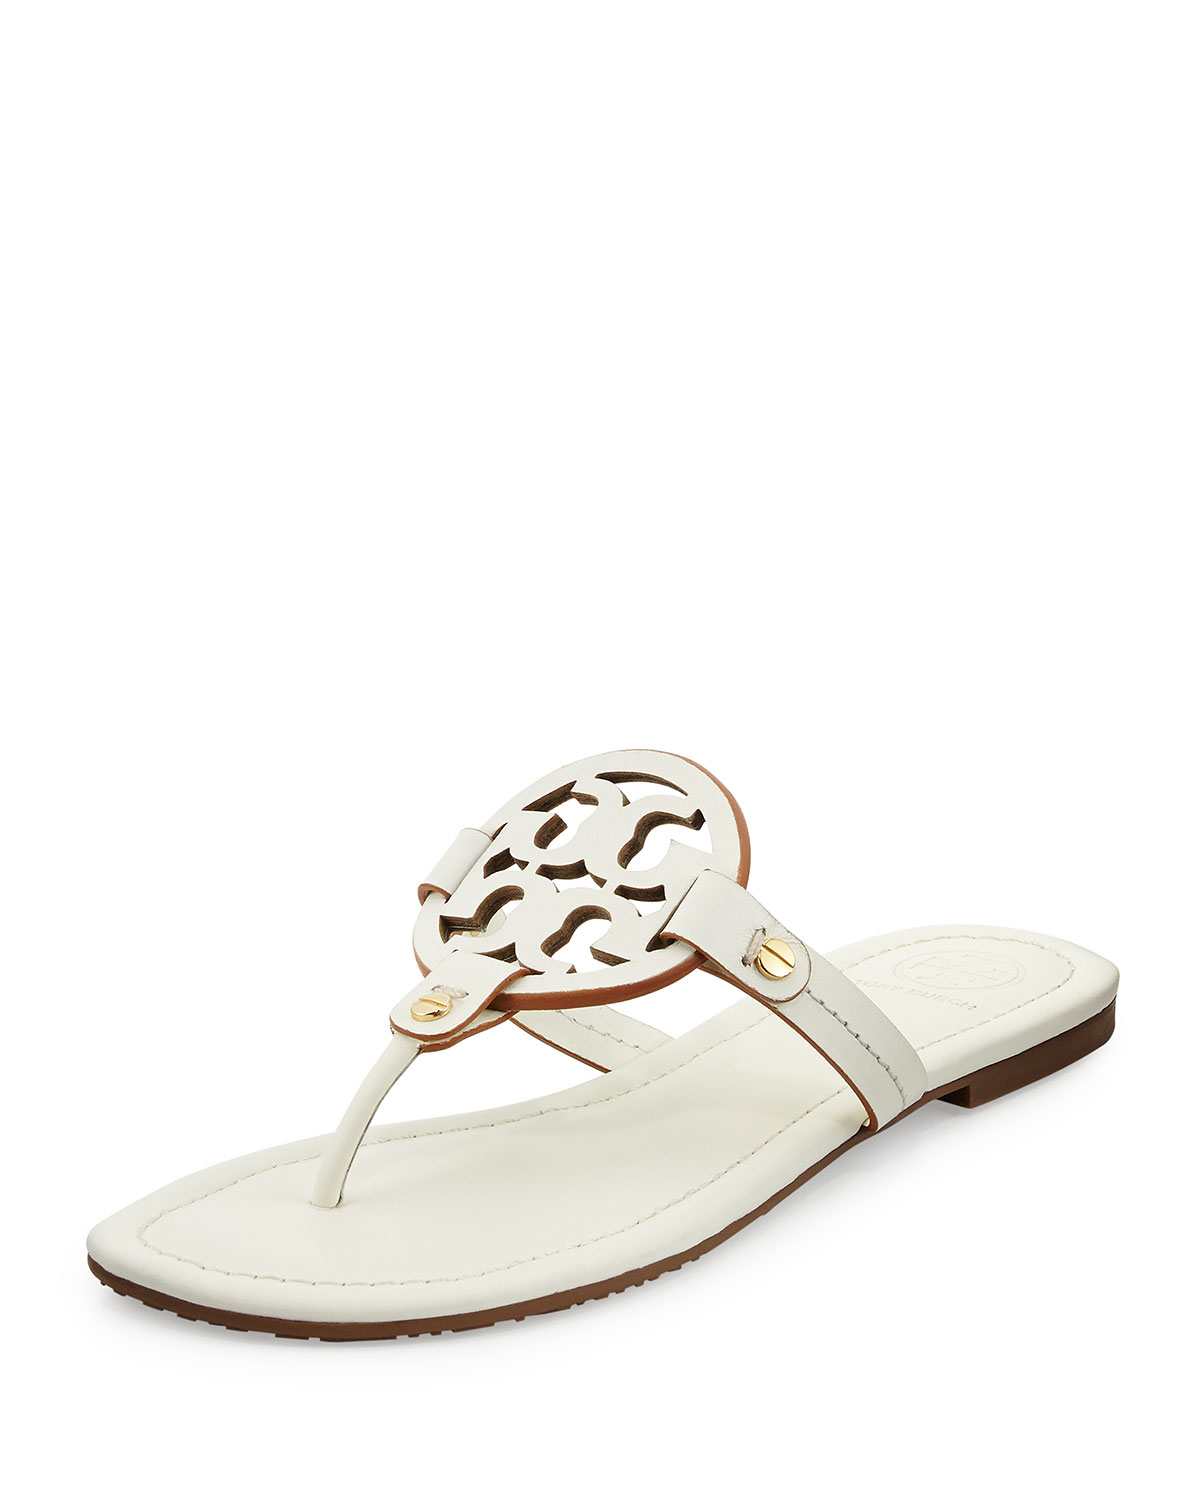 c233239601065d Lyst - Tory Burch Miller Leather Logo Thong Sandal in White